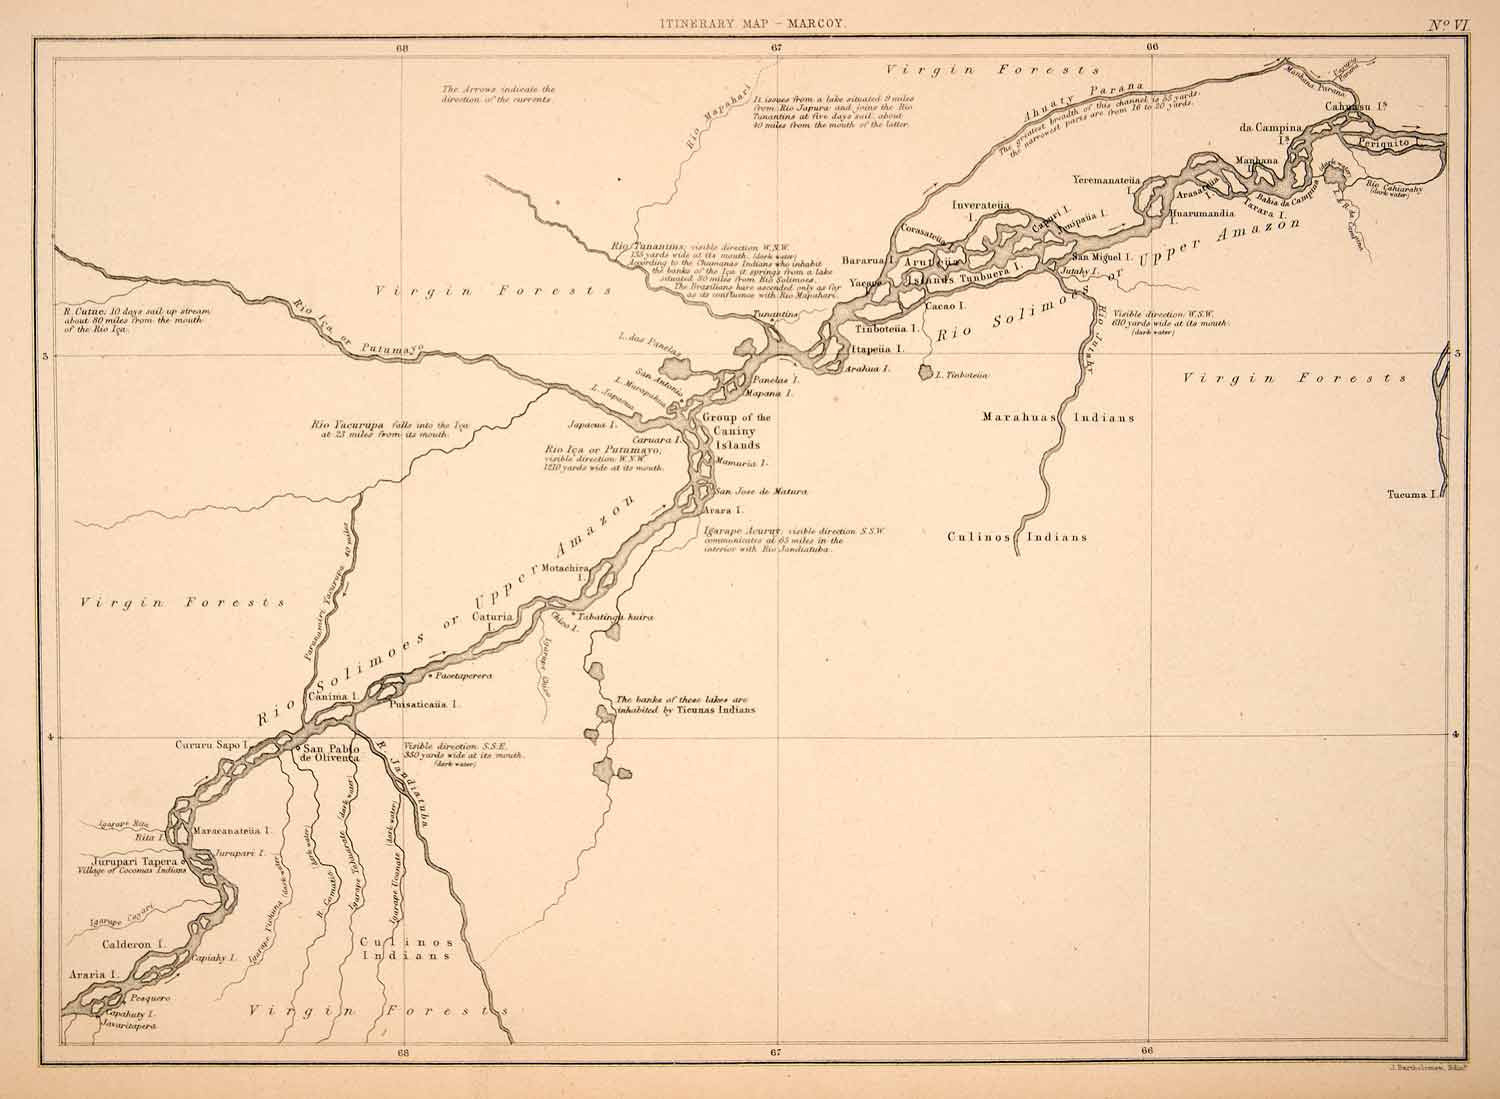 1875 Print Map Rio Solimoes Brazil Peru South America Upper Amazon.